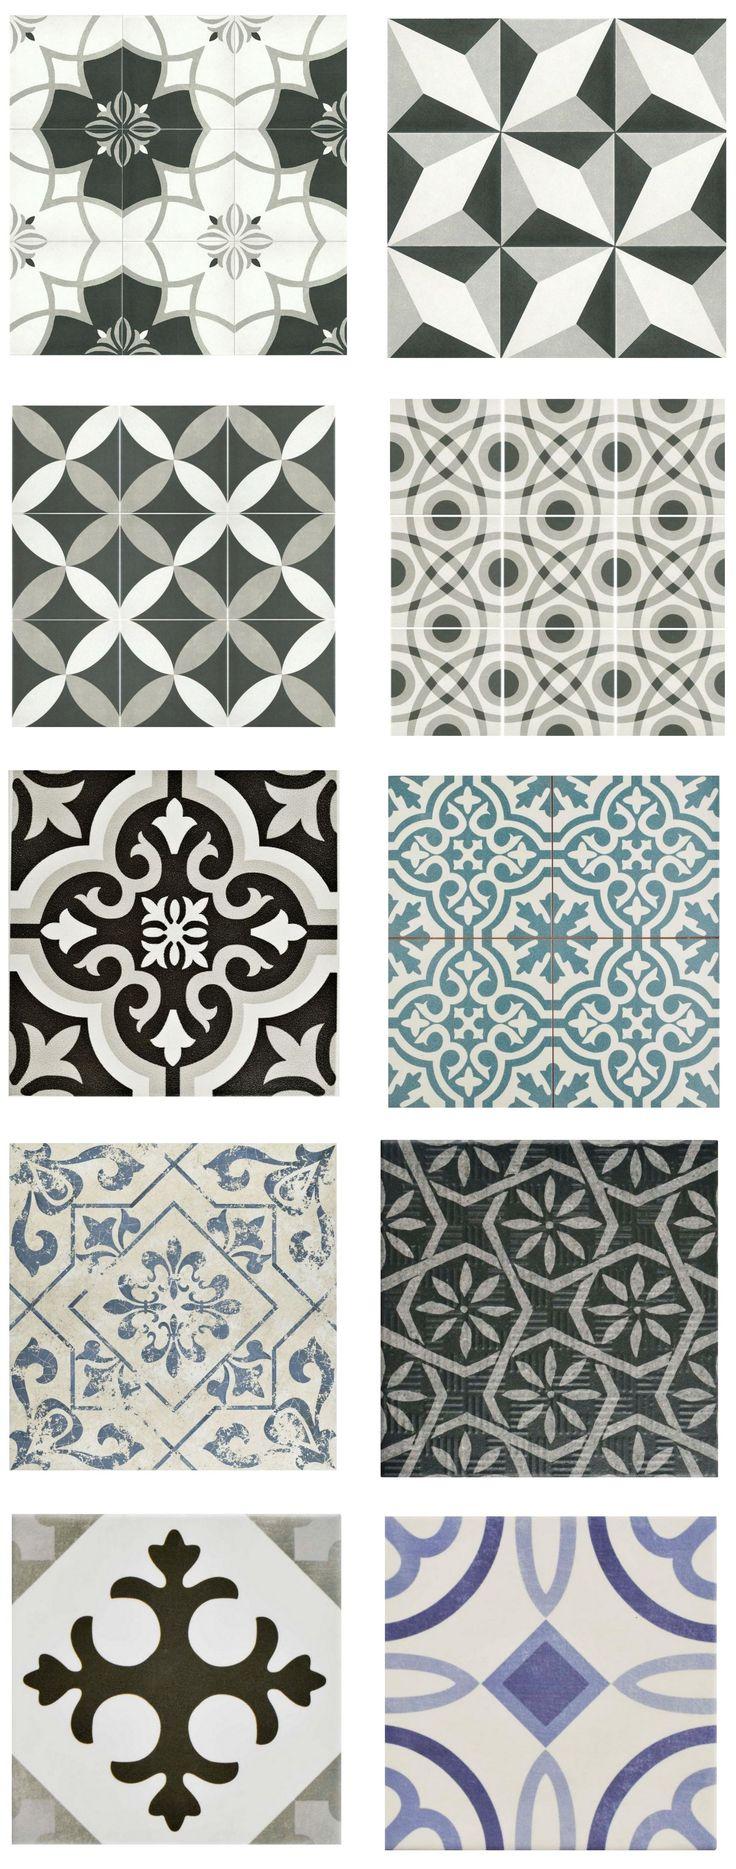 best 25+ tile ideas on pinterest | kitchen tile designs, home